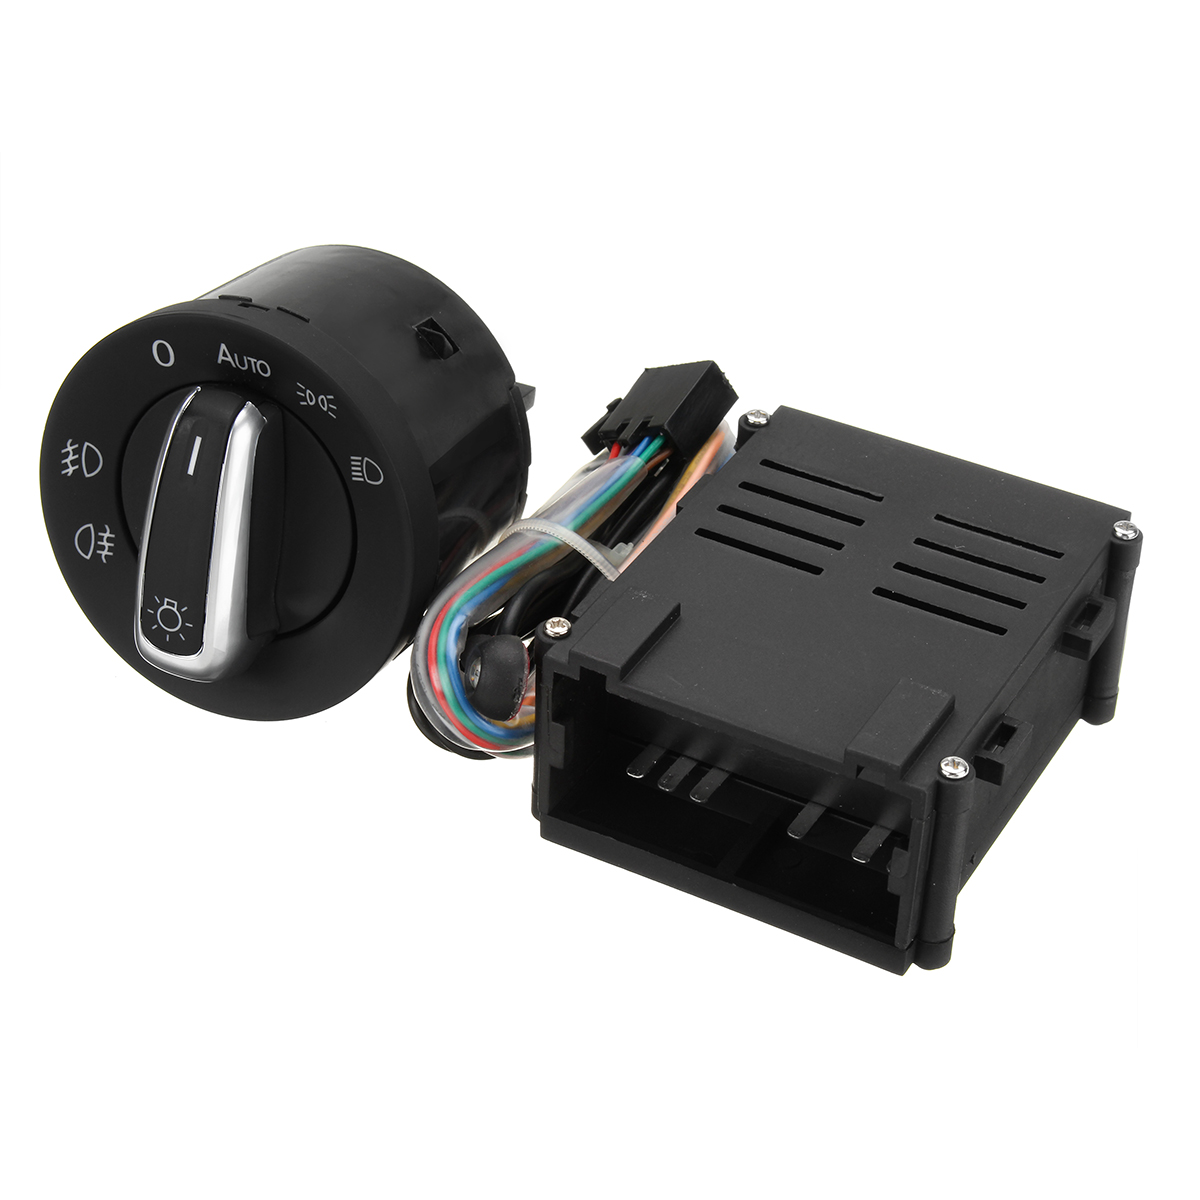 Image 2 - Car Auto Headlight Sensor HeadLamp Knob Switch Control Module for VW T5 T5.1 Transporter 2003 2015-in Car Switches & Relays from Automobiles & Motorcycles